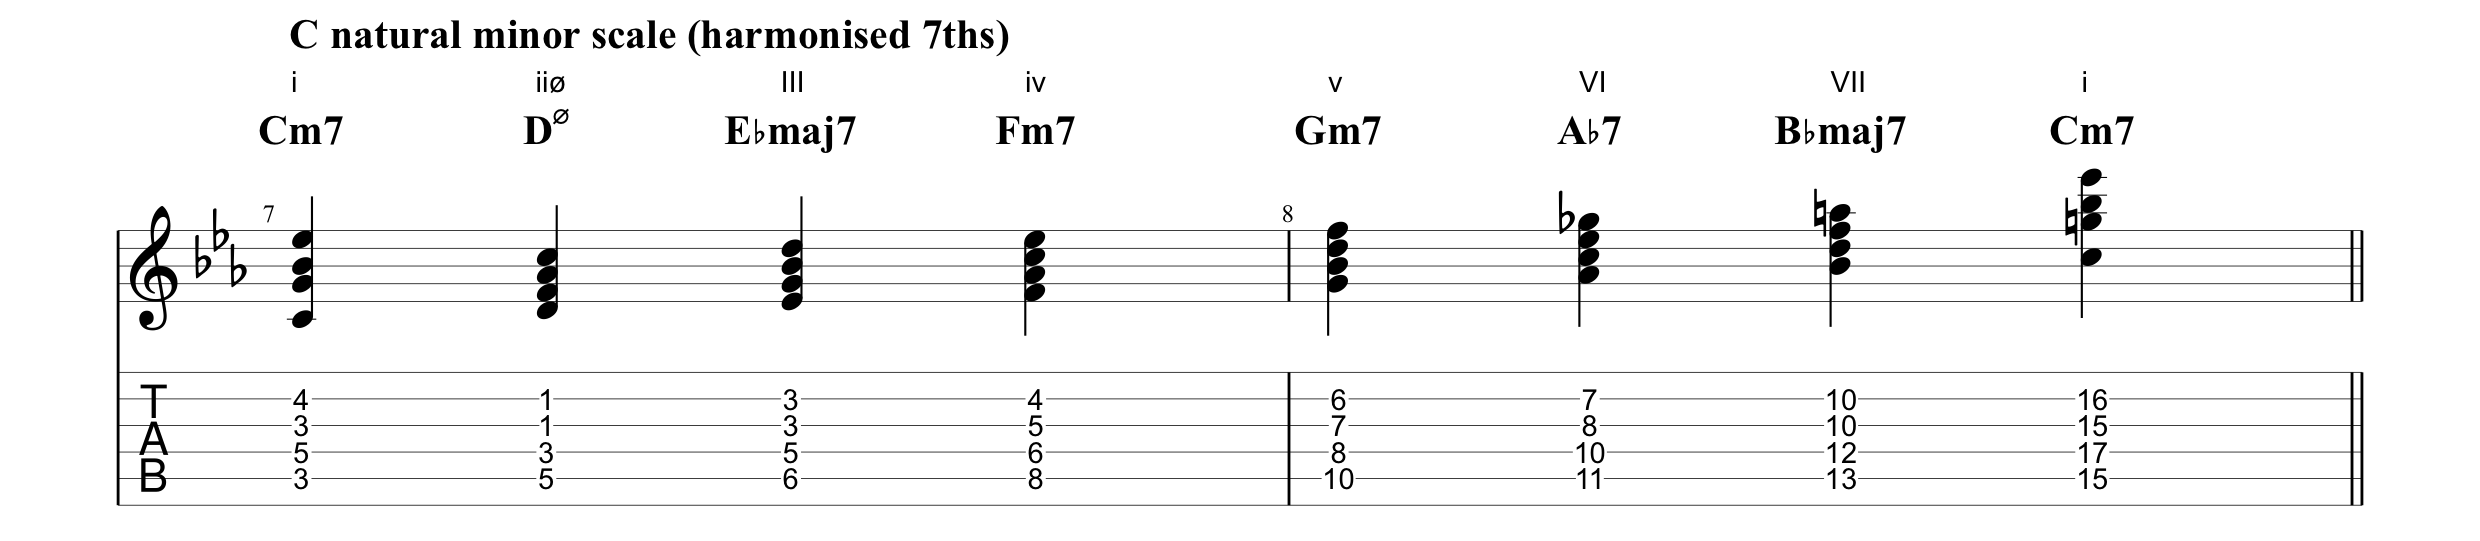 C natural minor scale 7ths.png